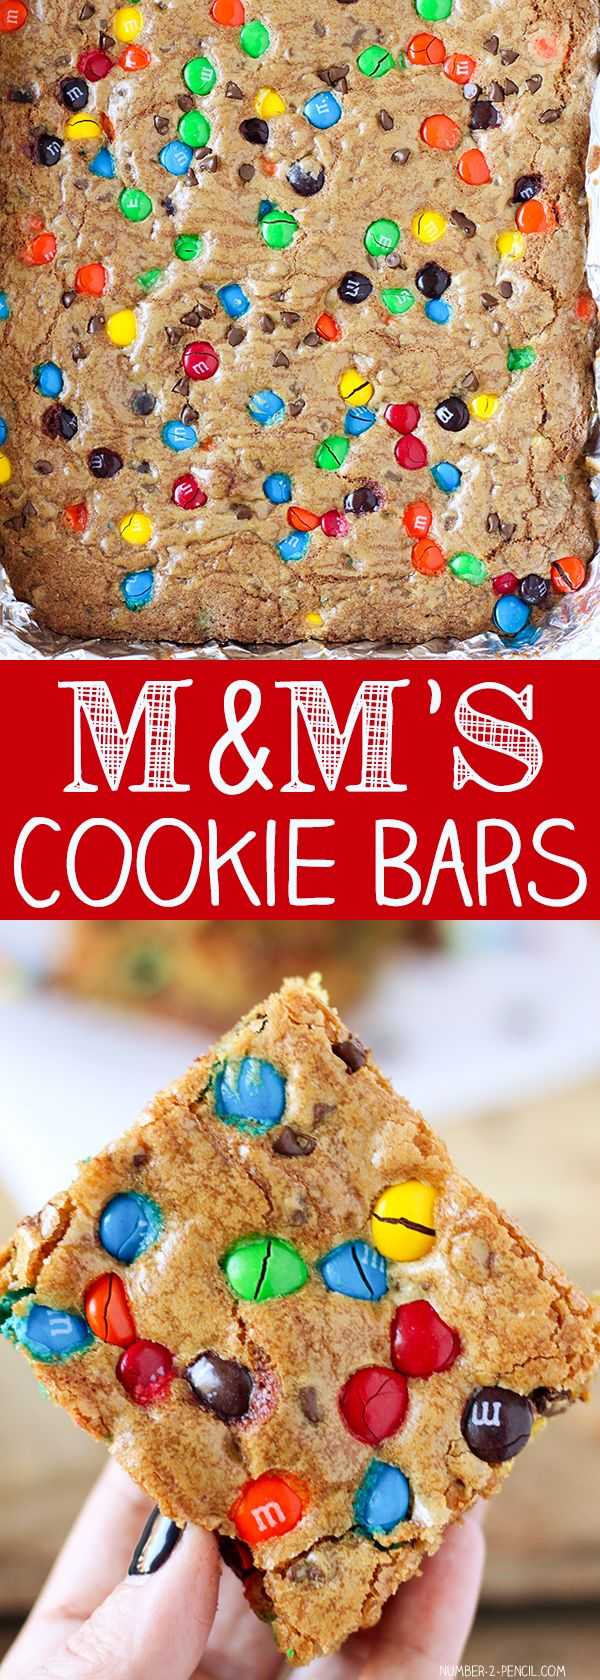 M&M'S Chocolate Chip Cookie Bars | 2 sticks of butter, at room temperature 1 cup of granulated sugar 1 cup of firmly packed golden brown sugar 3 large eggs 1 1/2 teaspoons of pure vanilla extract 3 cups of all-purpose flour 3/4 teaspoon of baking soda 3/4 teaspoon of salt 1 1/2 cups of M&M's, plus more for topping 1 cup of mini chocolate chips, plus more for topping